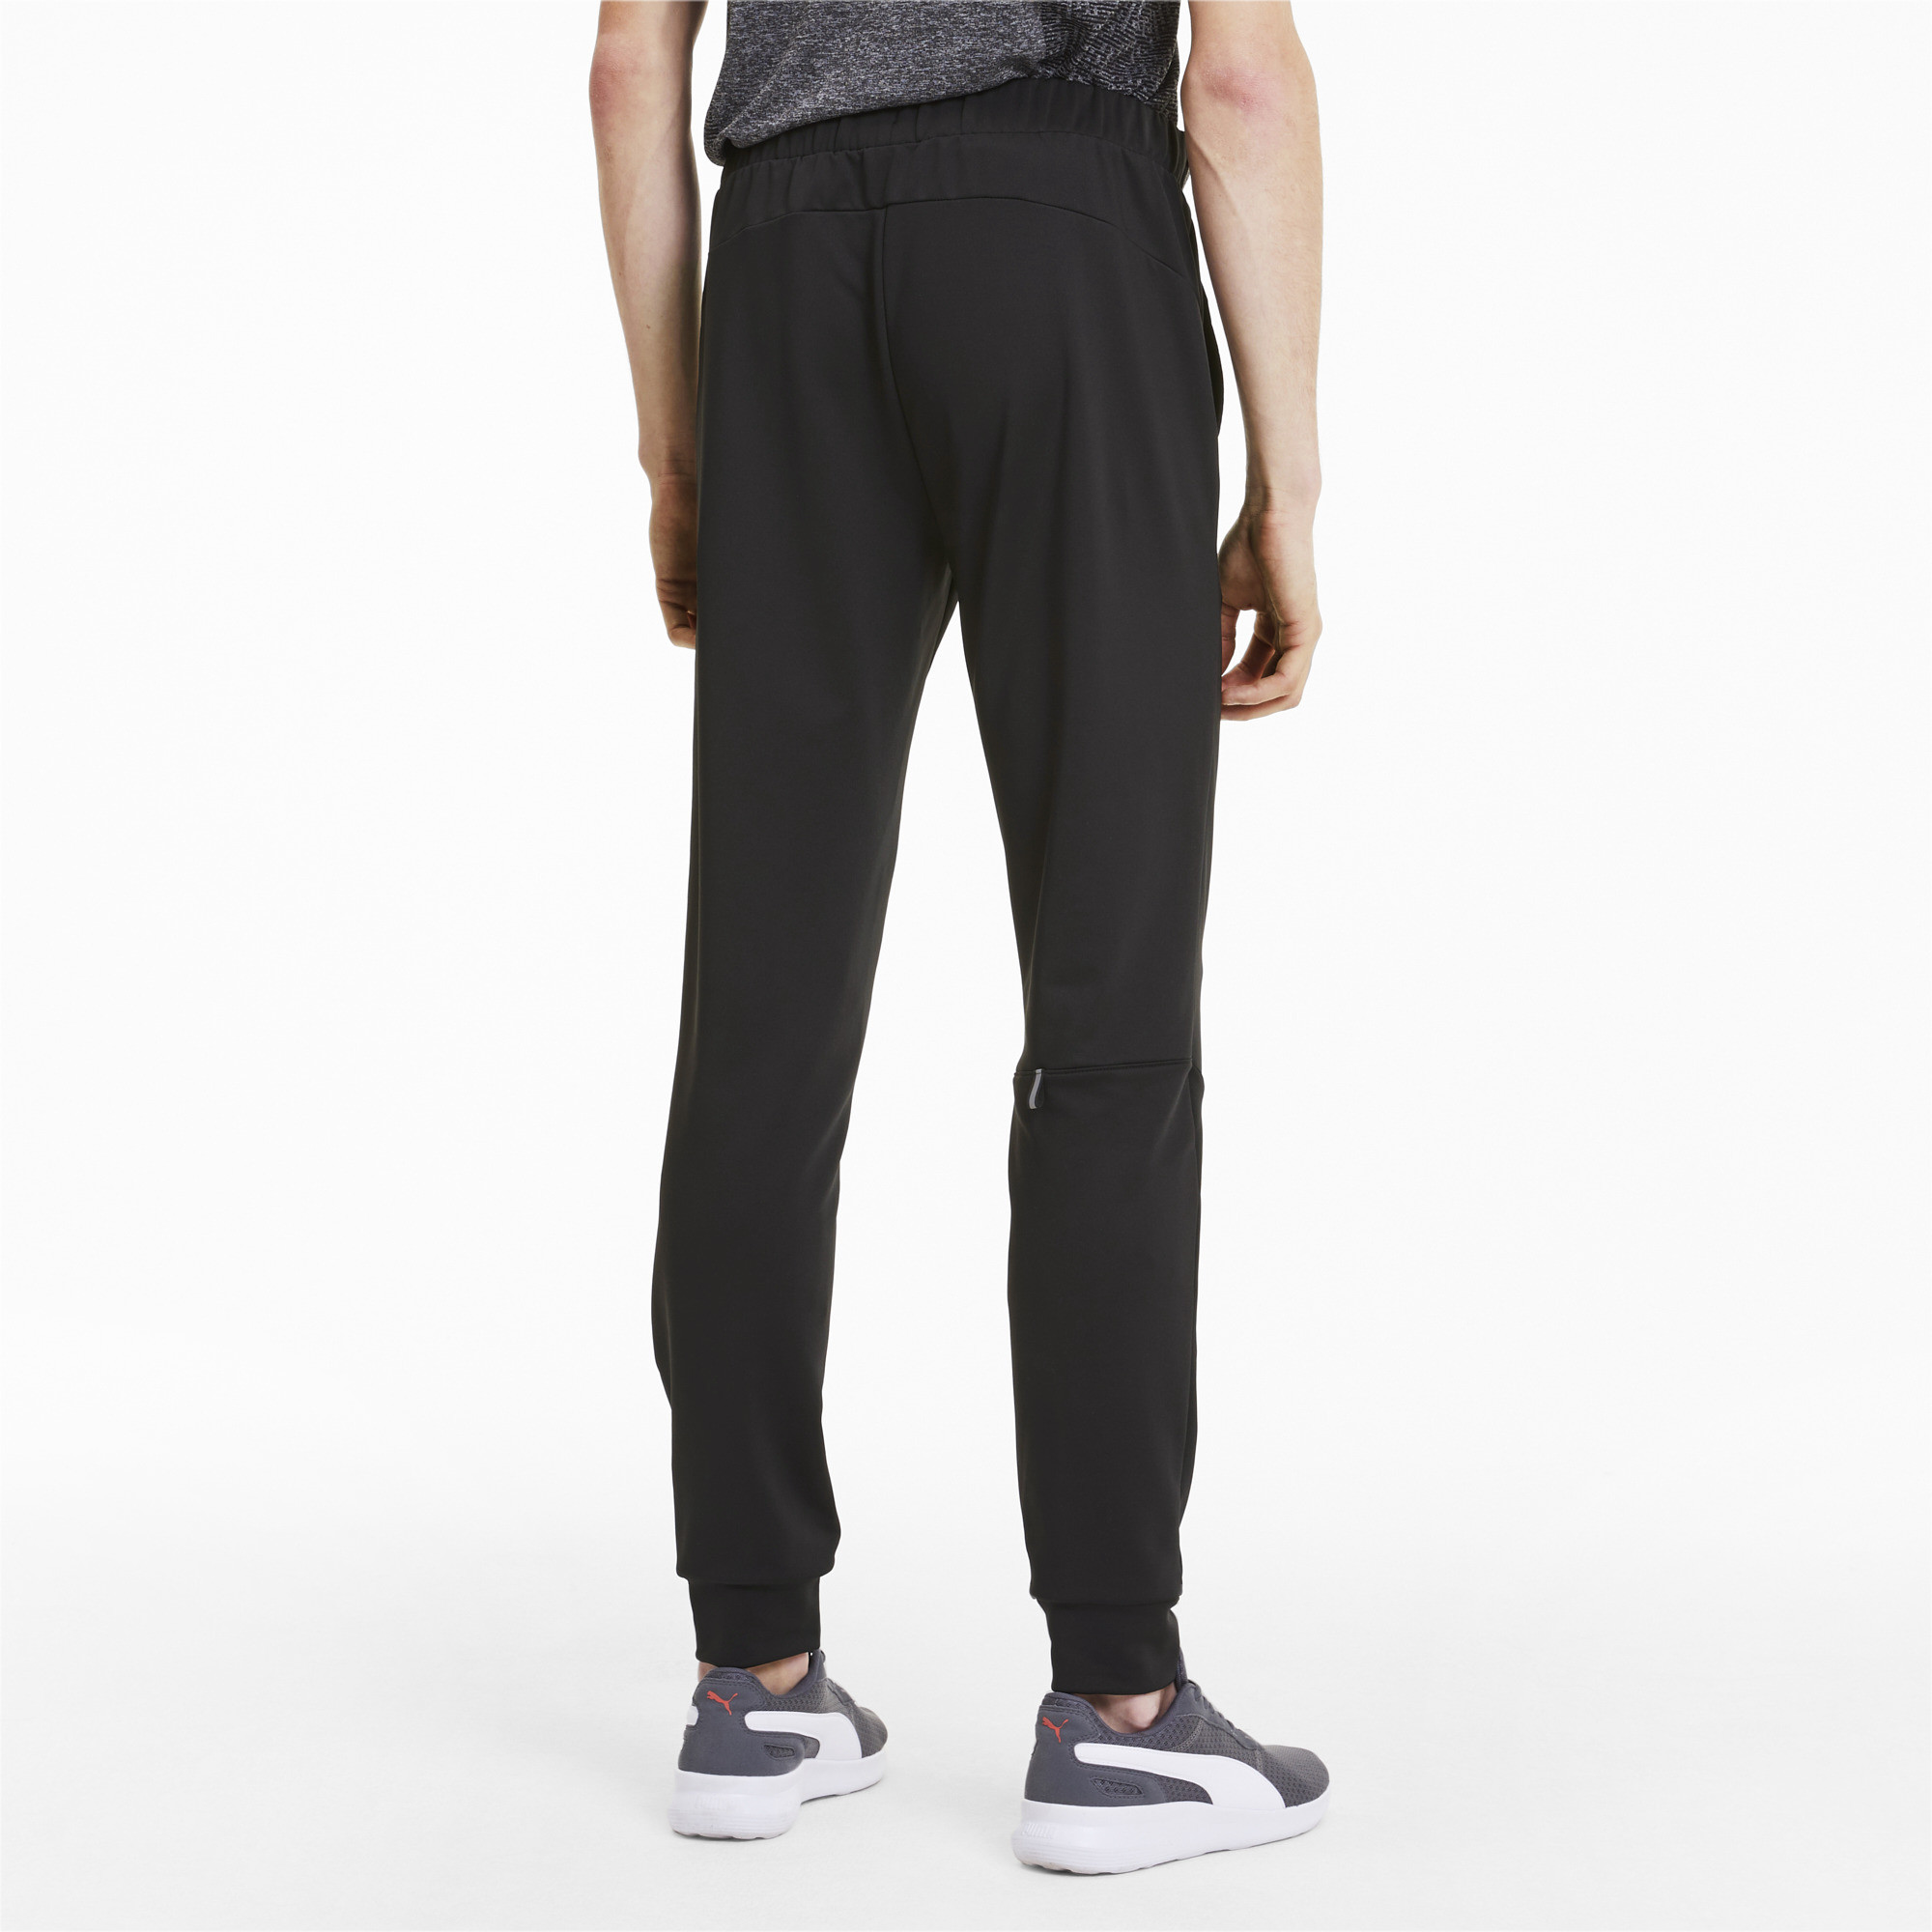 PUMA-RTG-Men-039-s-Knitted-Pants-Men-Knitted-Pants-Basics thumbnail 5